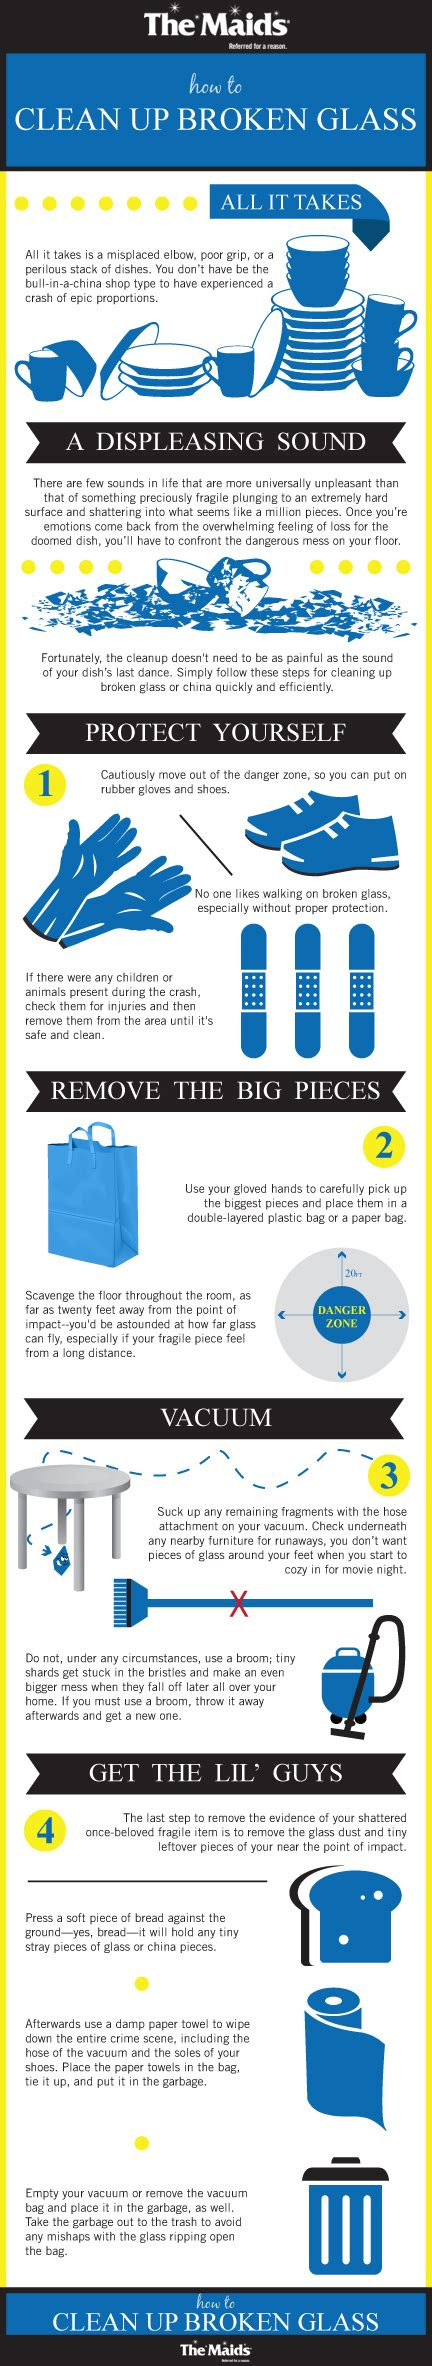 cleaning blogs how to clean up broken glass the maids blog